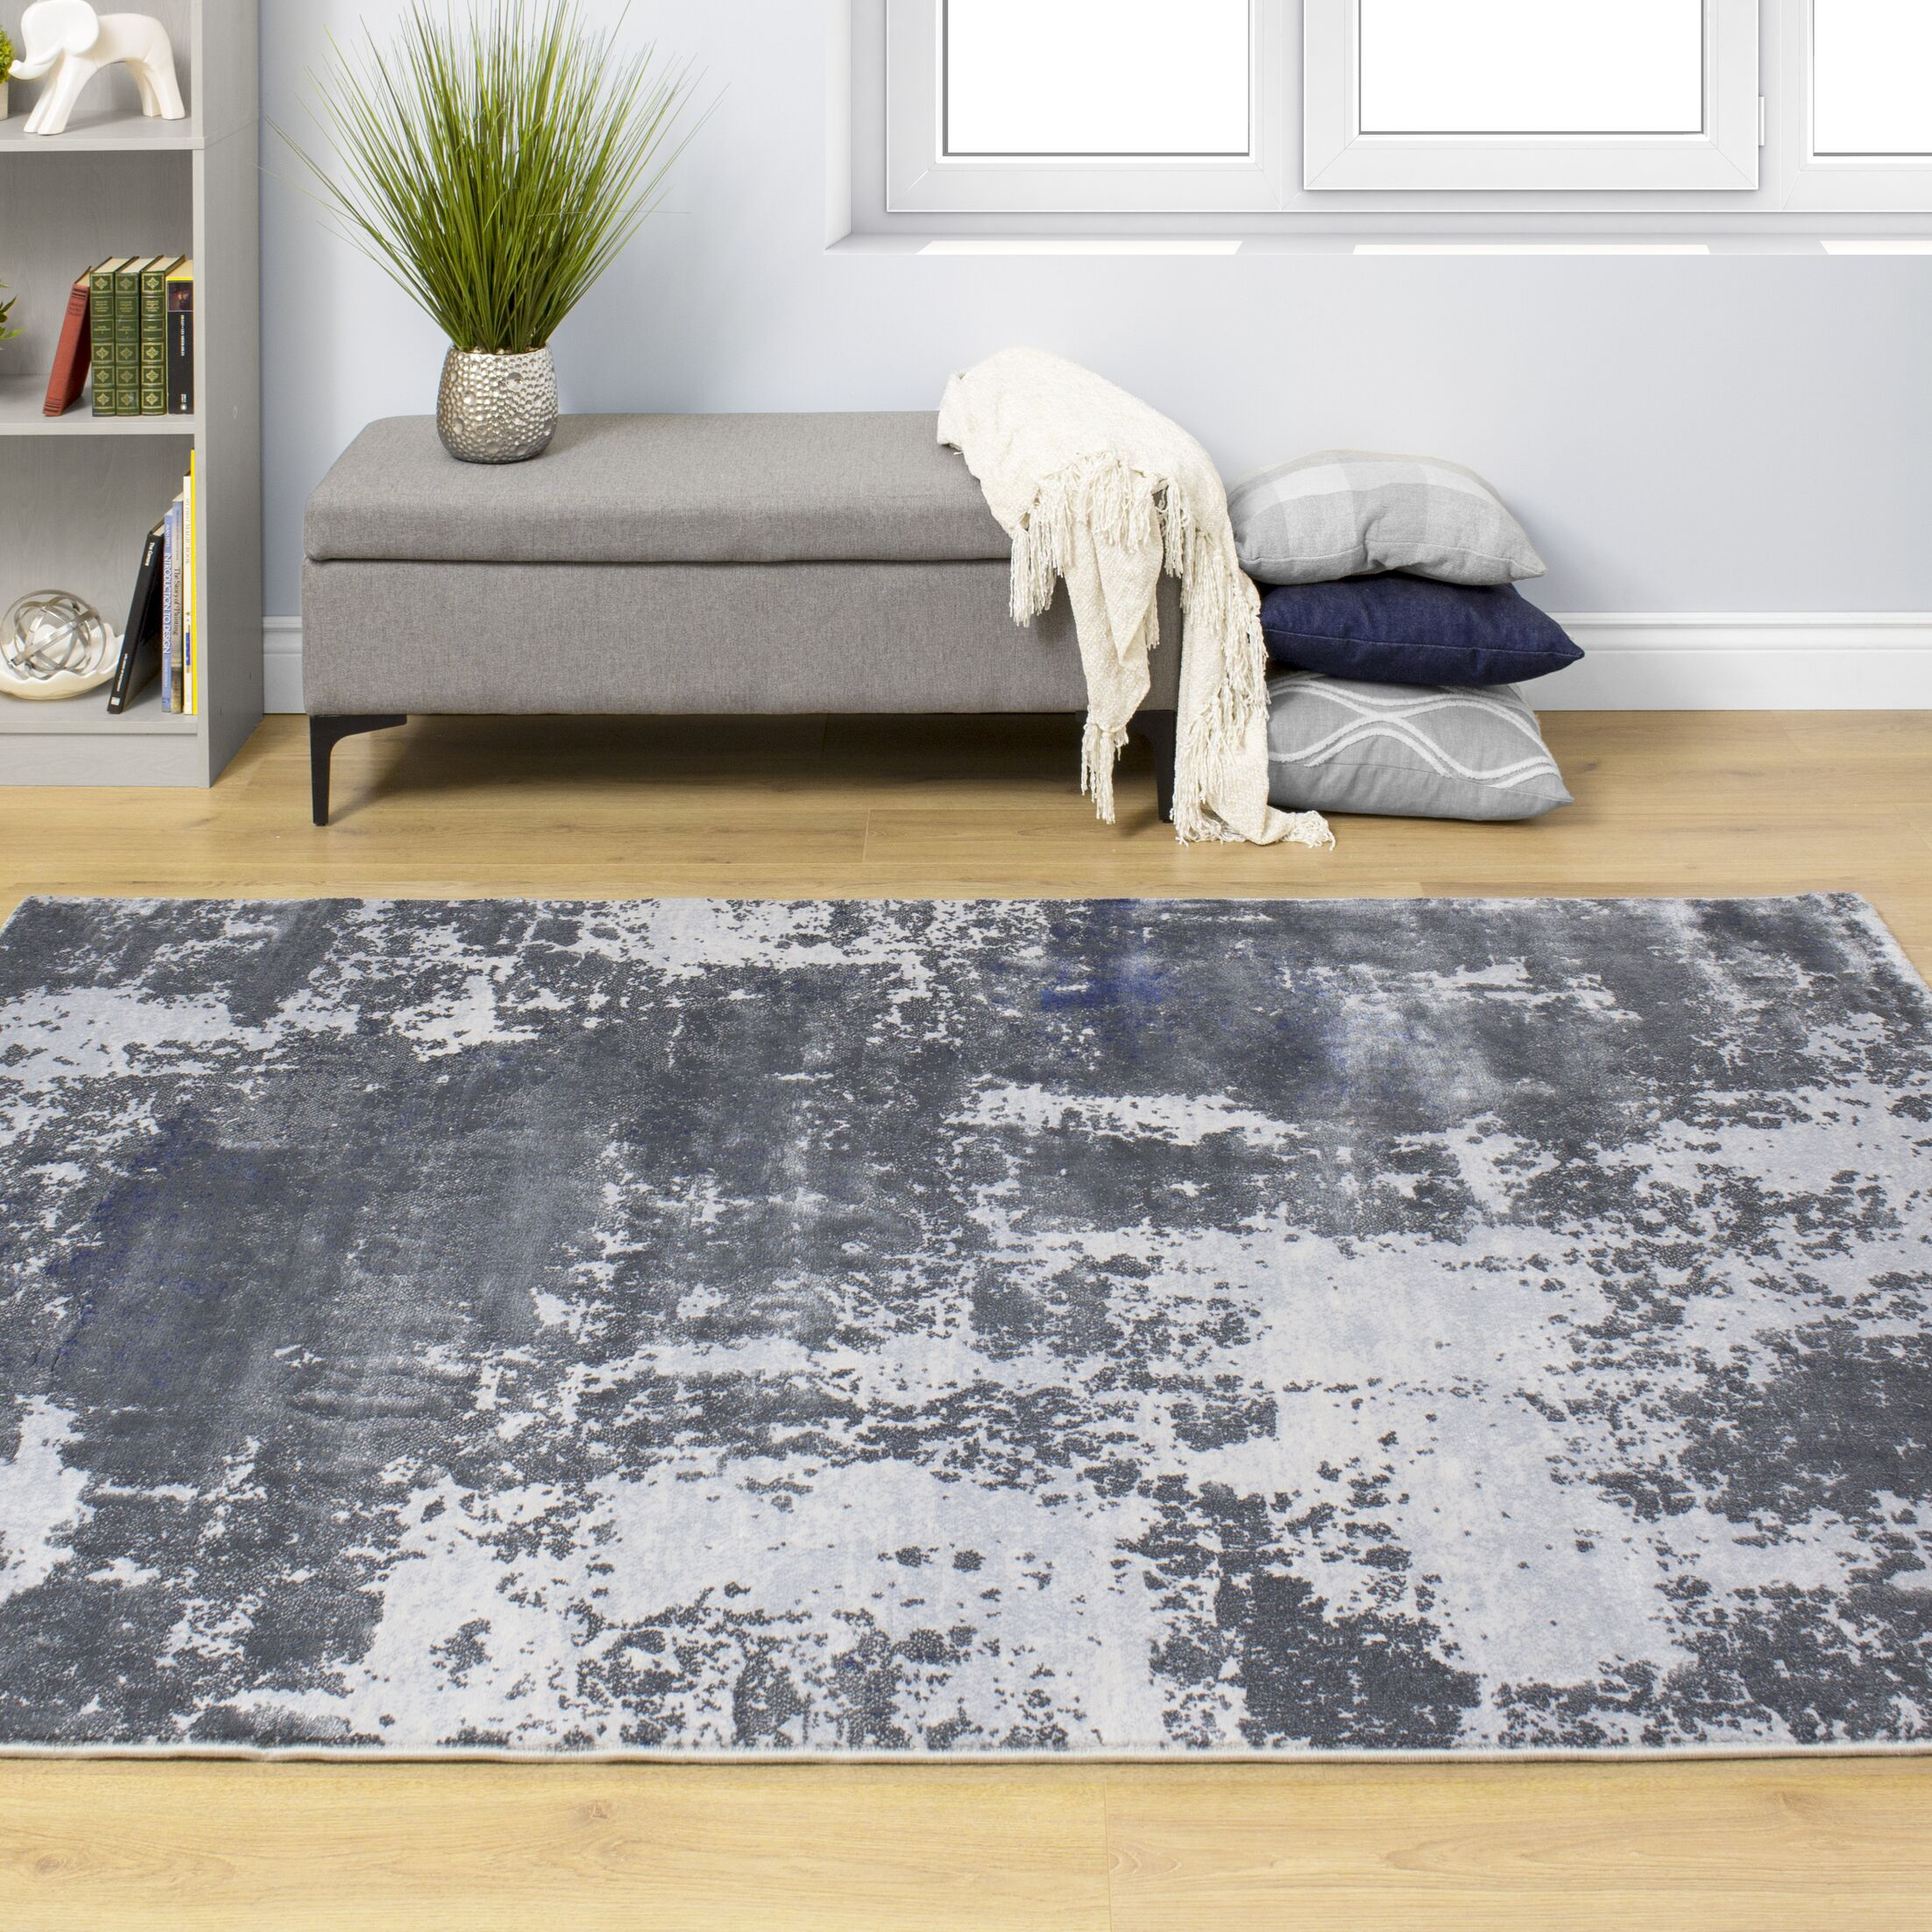 Aurelio Distressed Abstract Gray/Blue Area Rug Rug Size: Rectangle 5'3'' x 7'7''